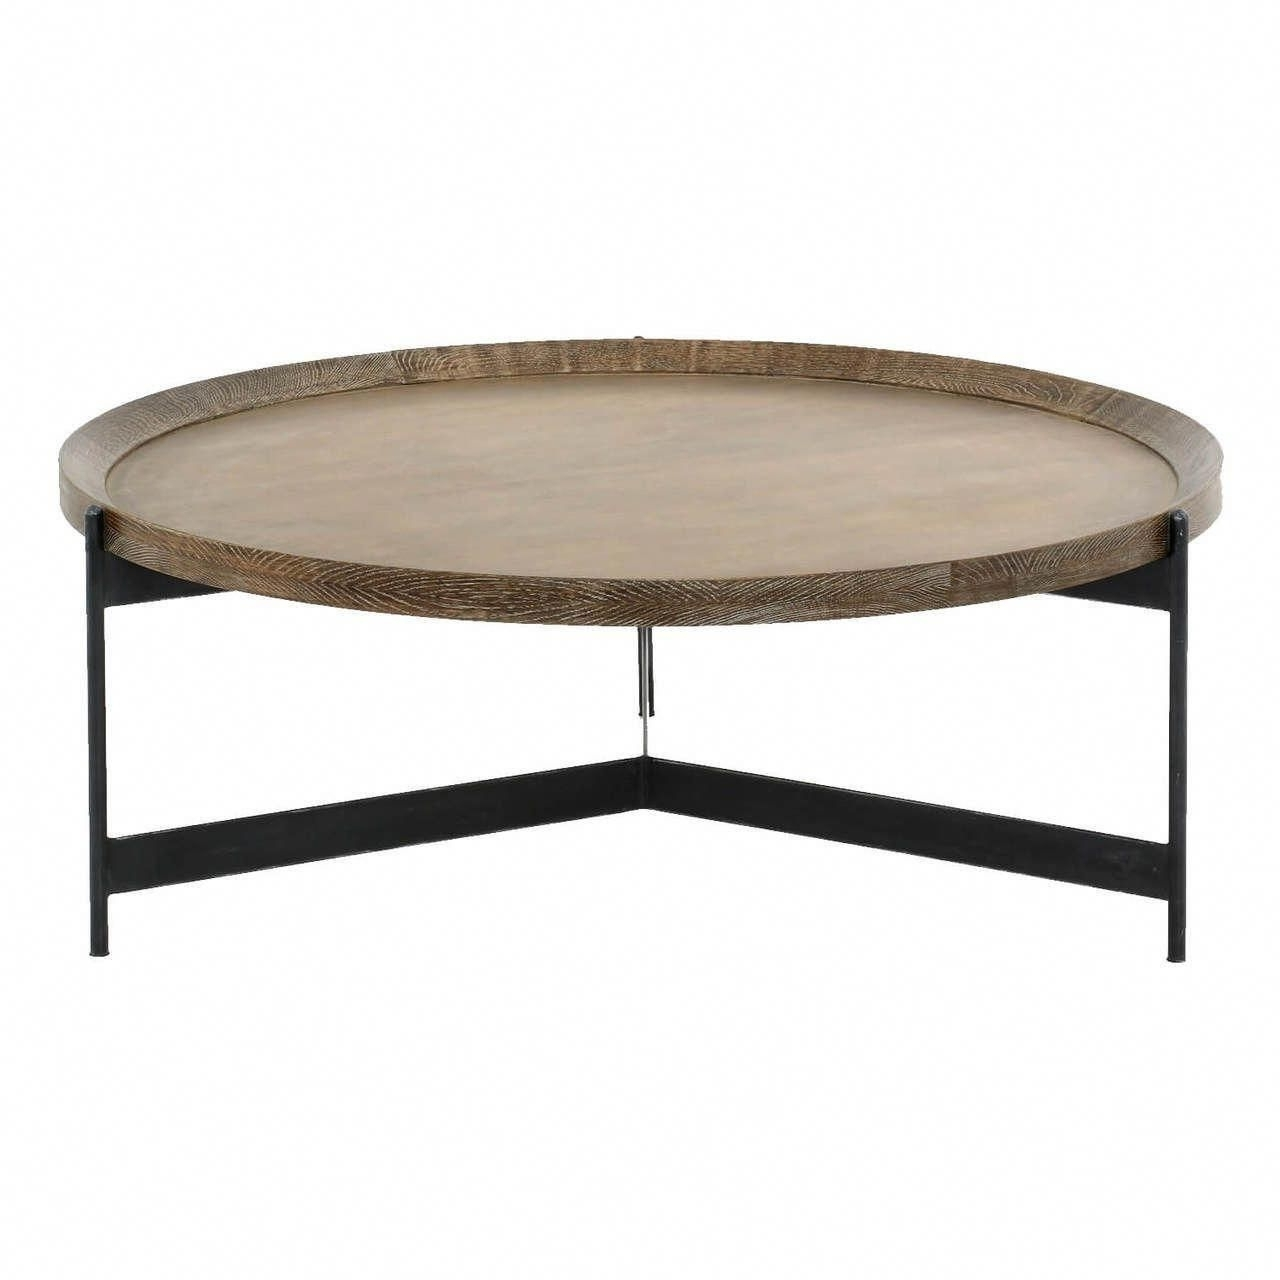 Nathaniel Brass And Oak Round Tray Coffee Table 40 Intended For Preferred Jelly Bean Coffee Tables (View 14 of 20)